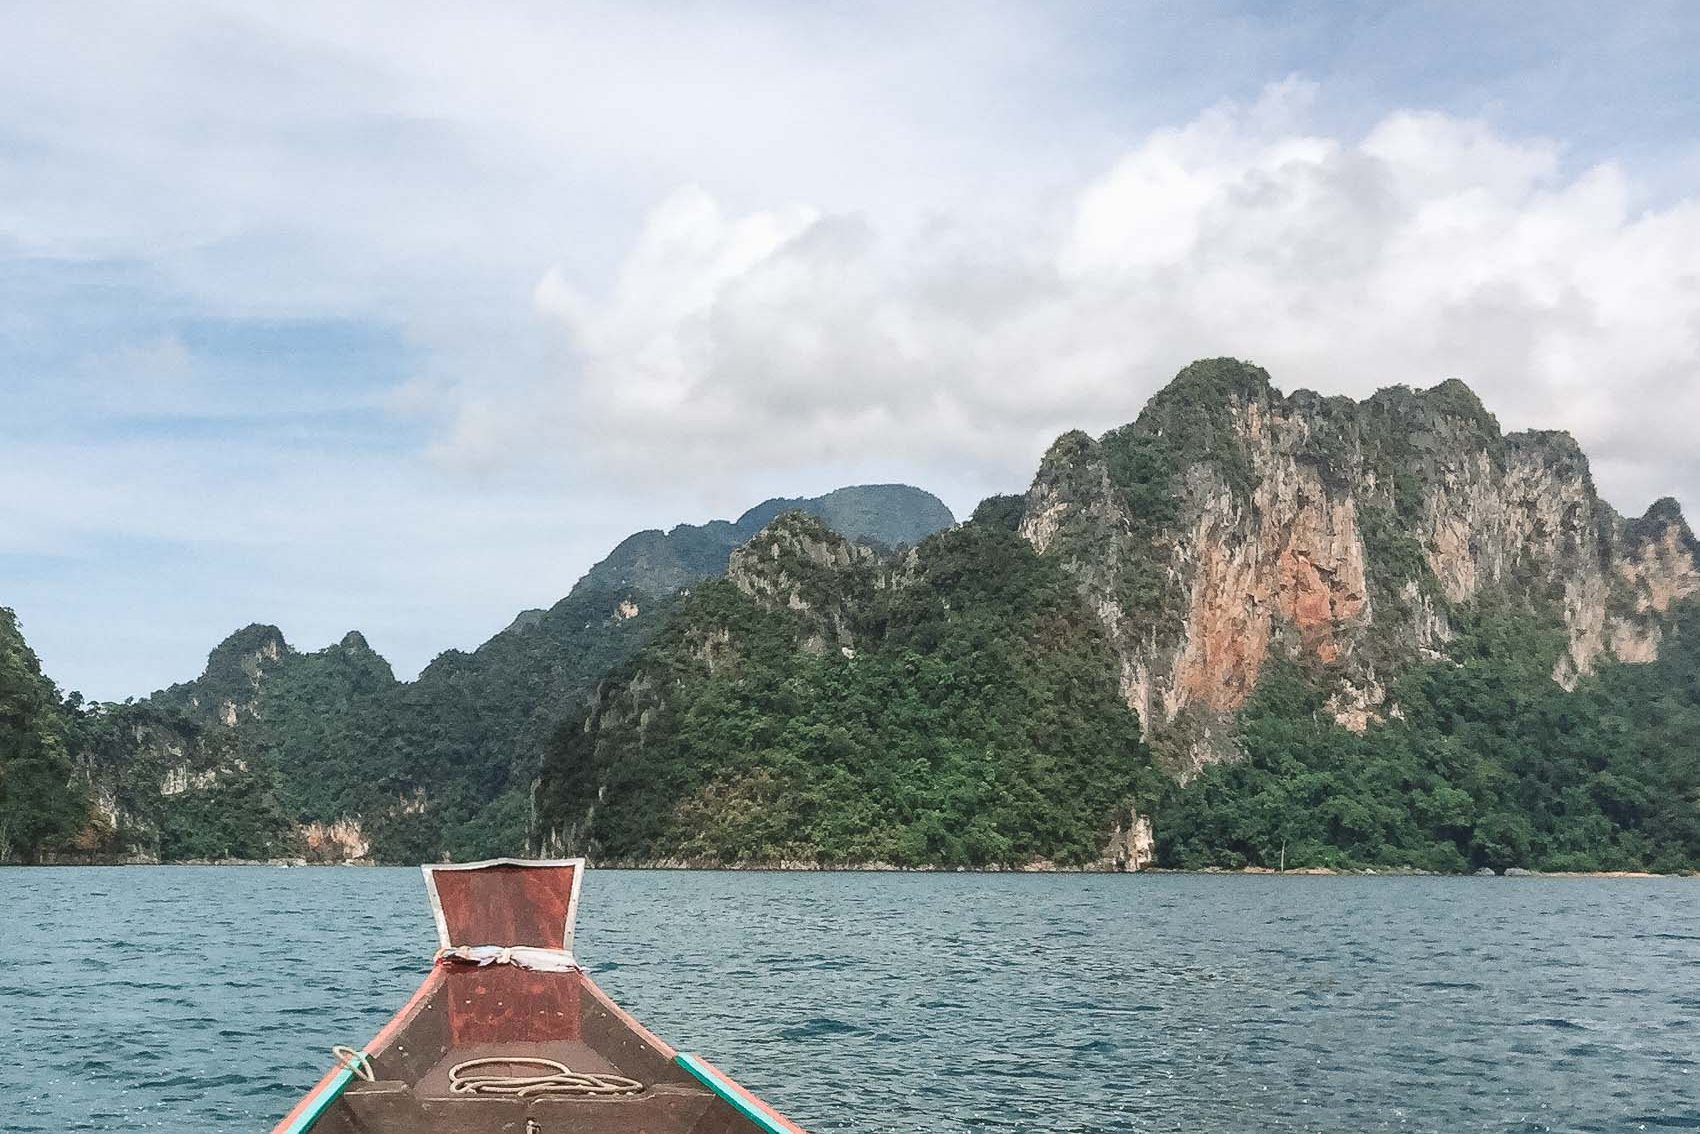 Boat on water at Khao Sok National Park in Thailand - bucket list travel